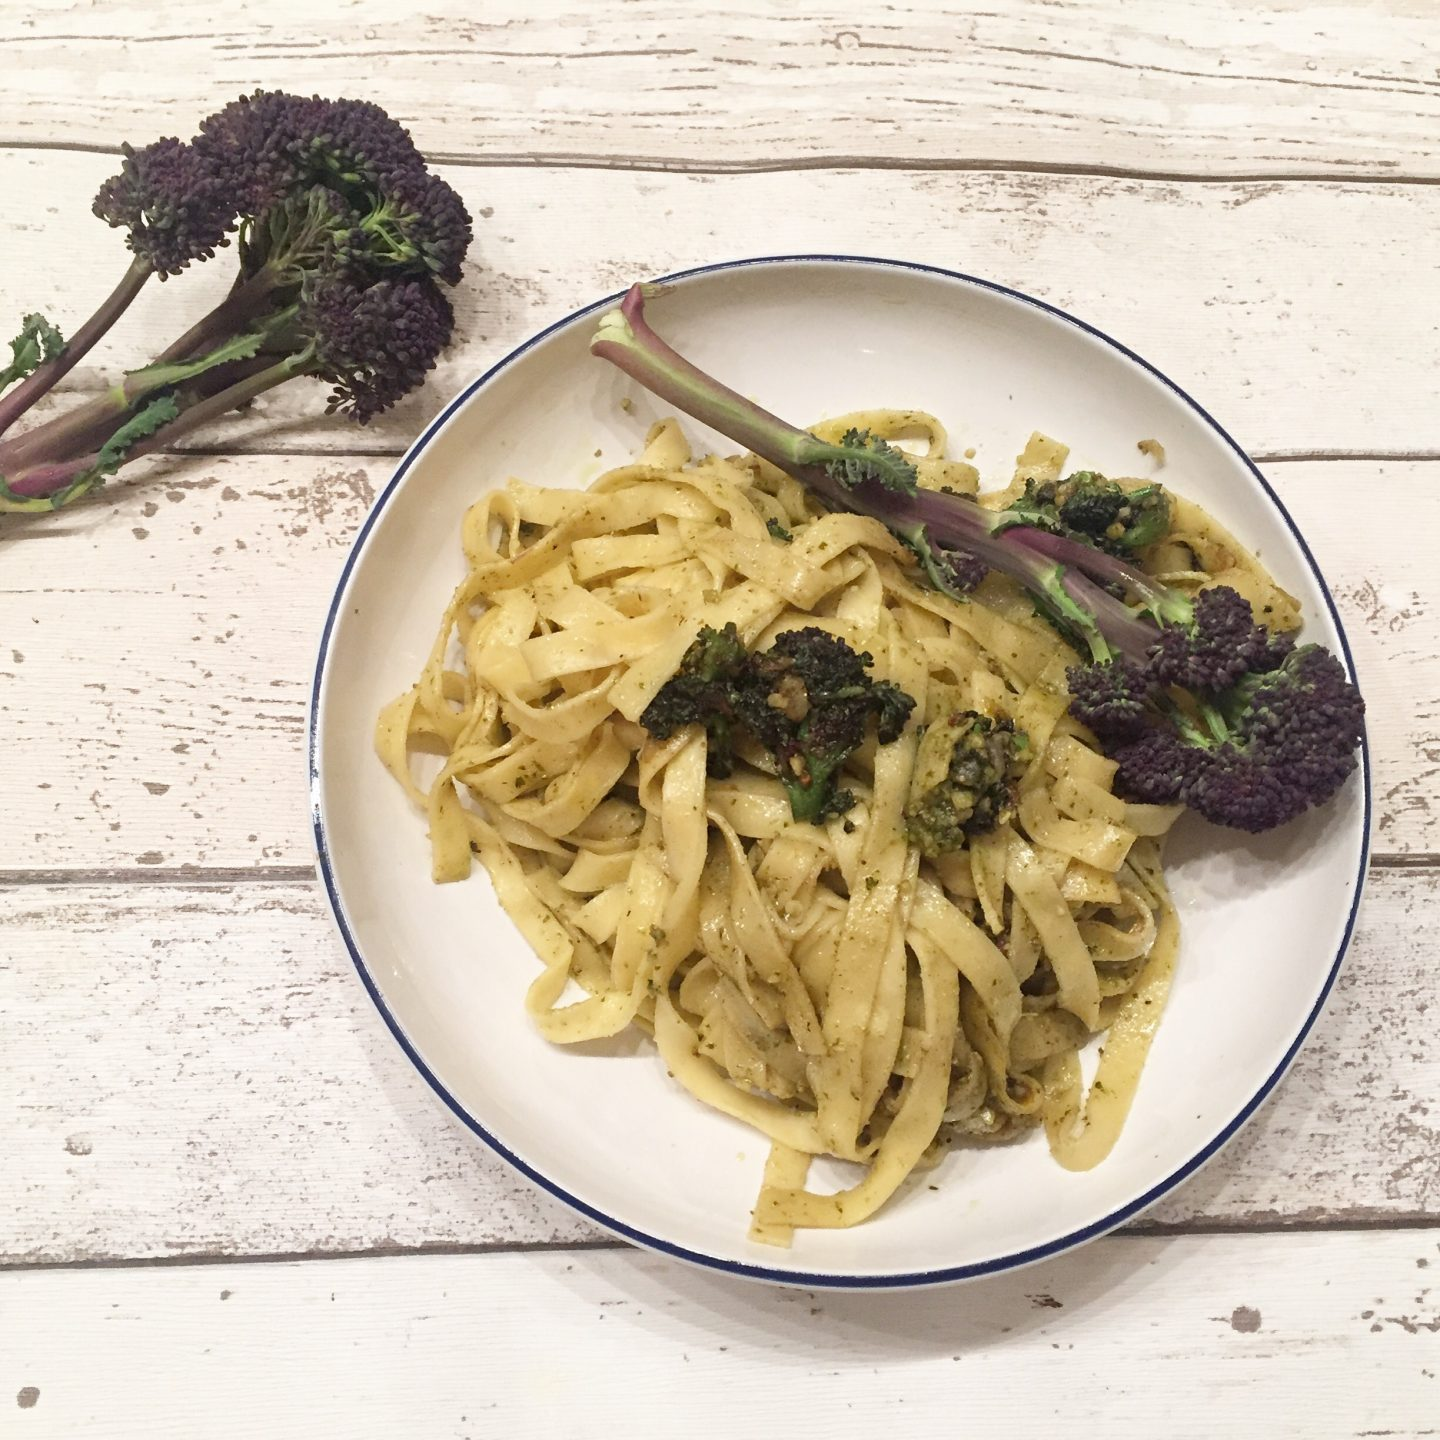 Tagliatelle with pesto, garlic, onions and purple sprouting broccoli